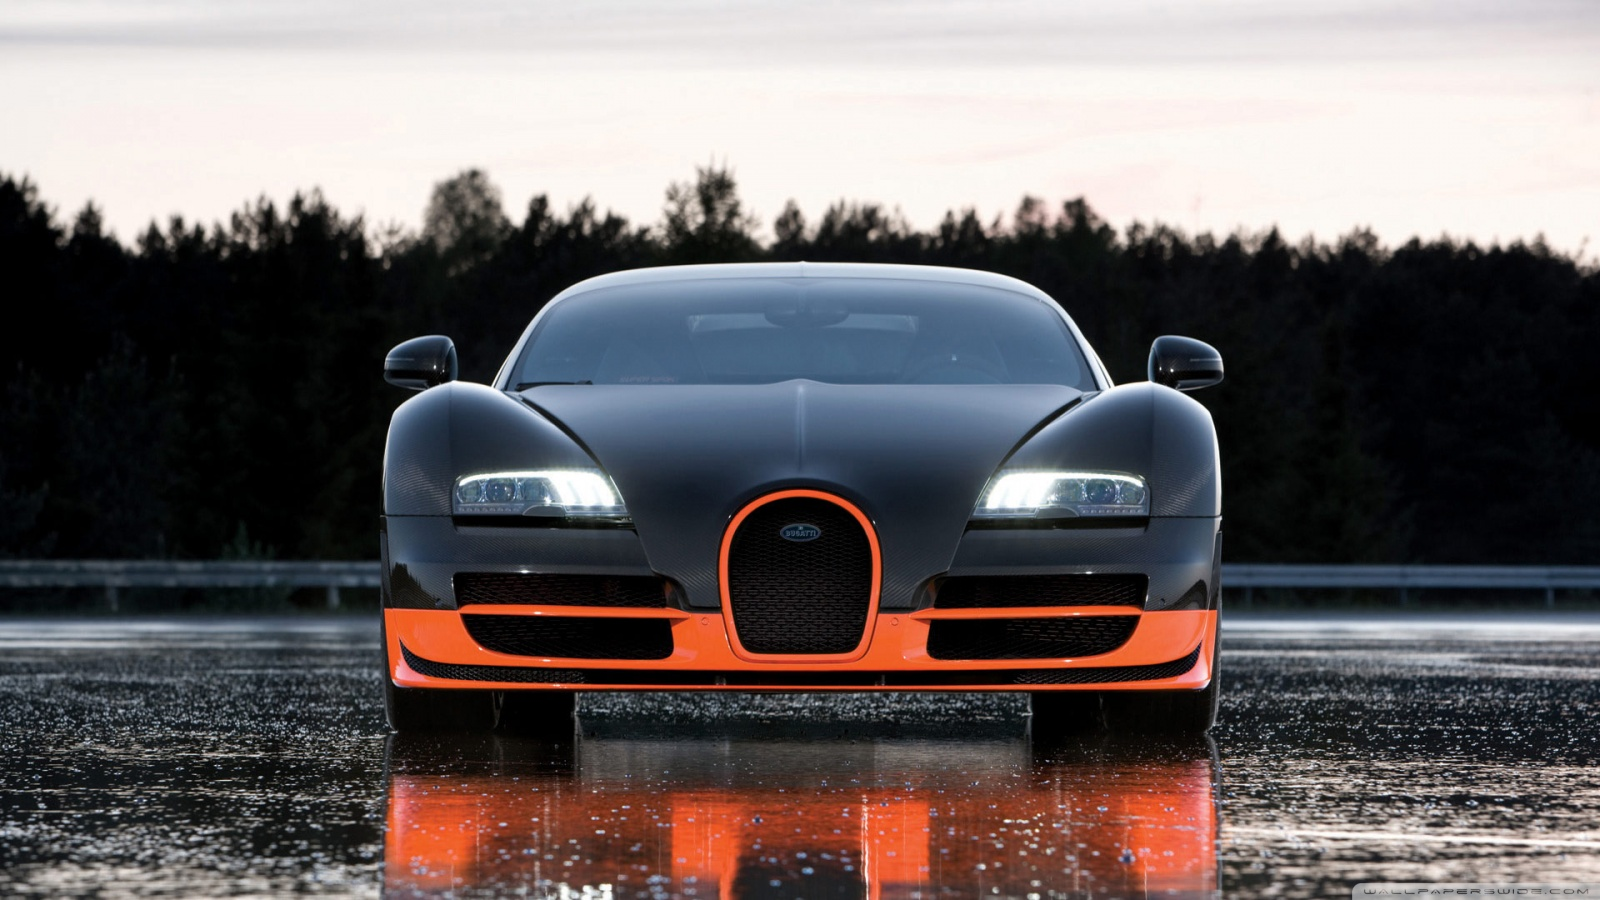 Bugatti Veyron Wallpaper Hd For Laptop World Number One